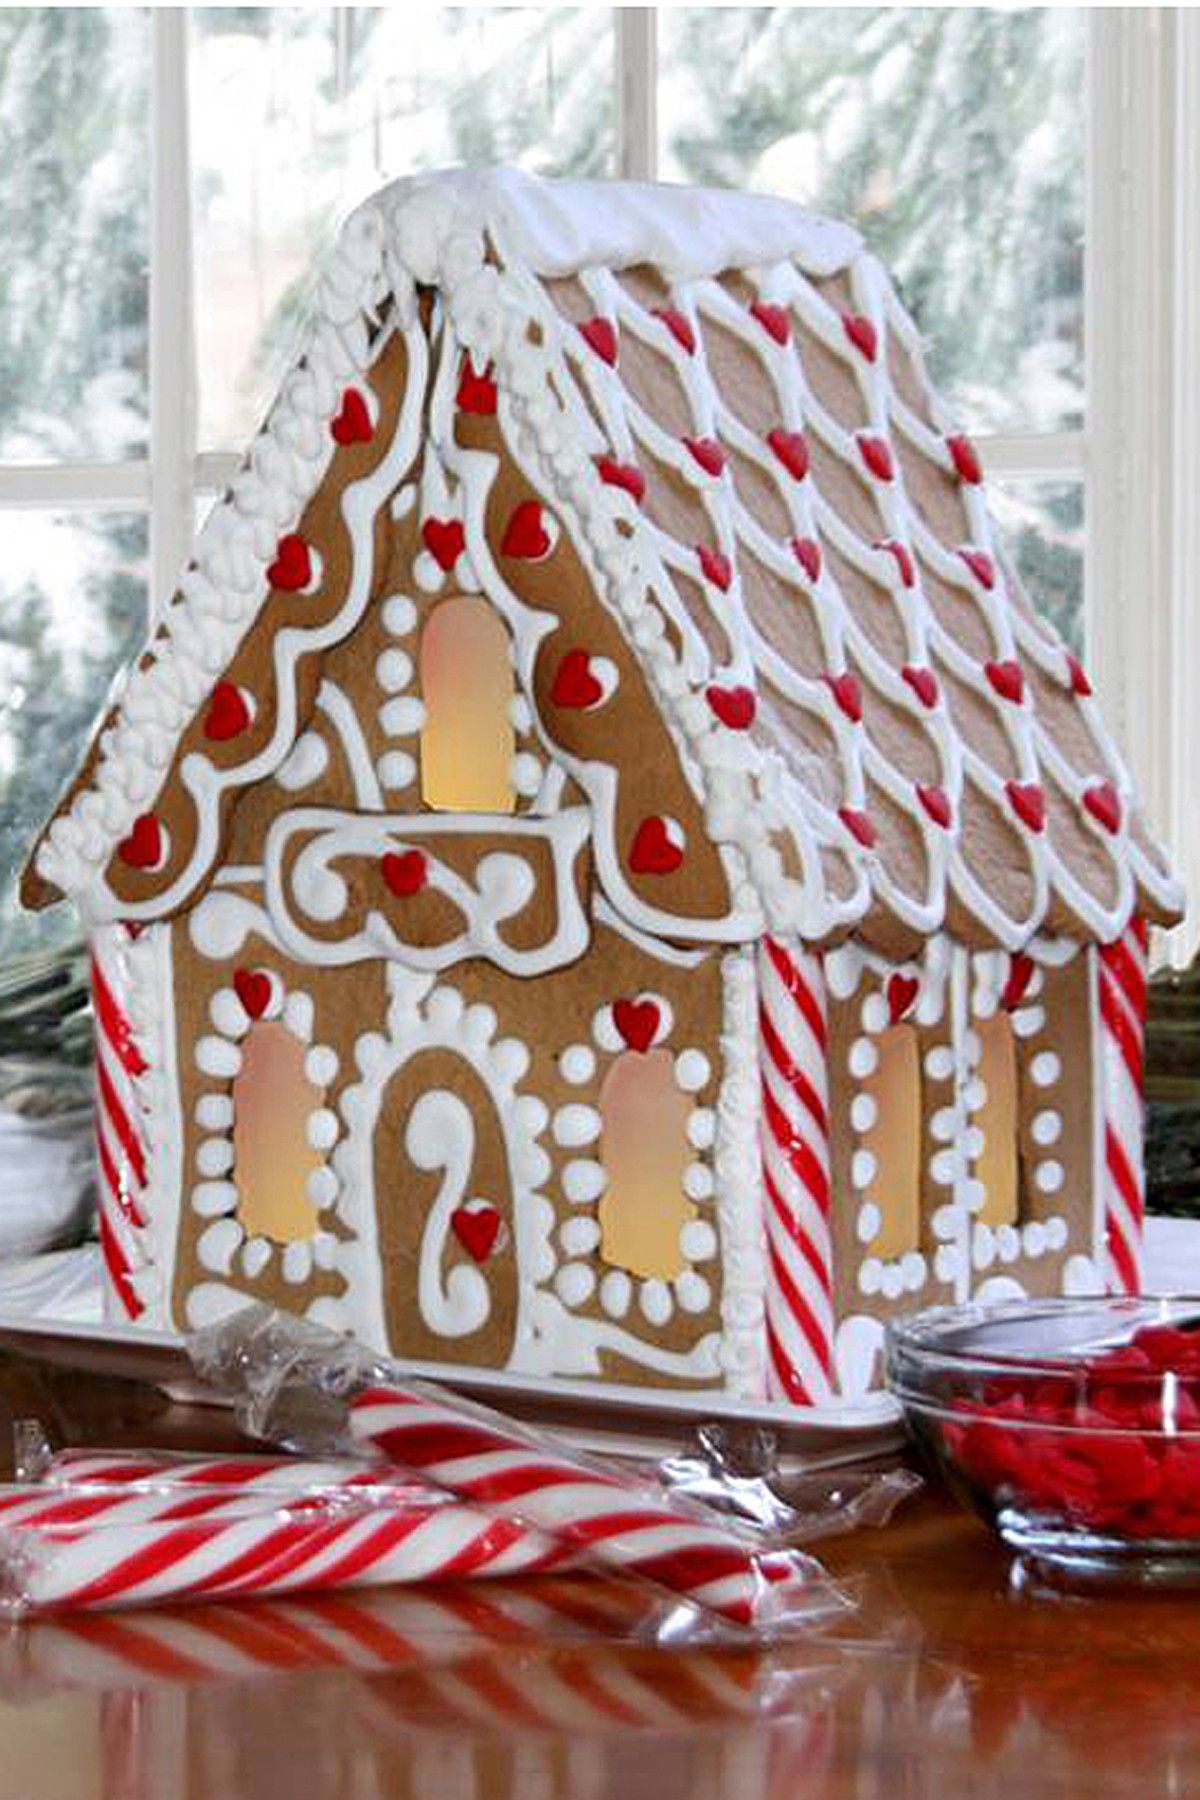 Gingerhaus Gingerbread Chalet Baking And Decorating Kit Hautelook Christmas Gingerbread House Gingerbread Gingerbread House